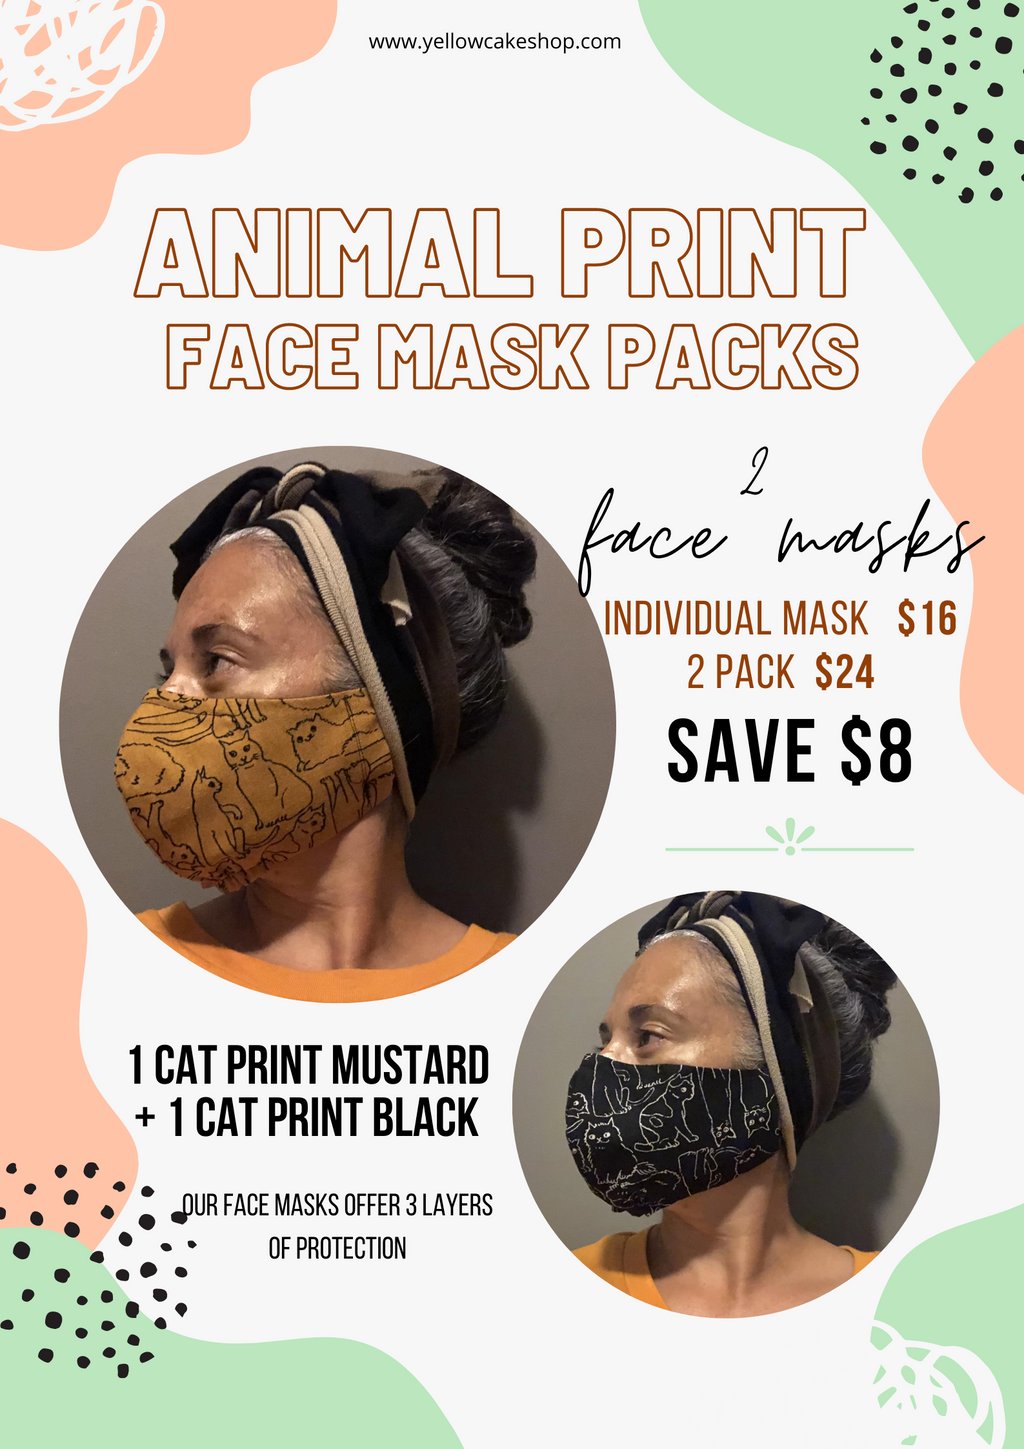 Animal Print Face Mask Pack - Yellowcake Shop